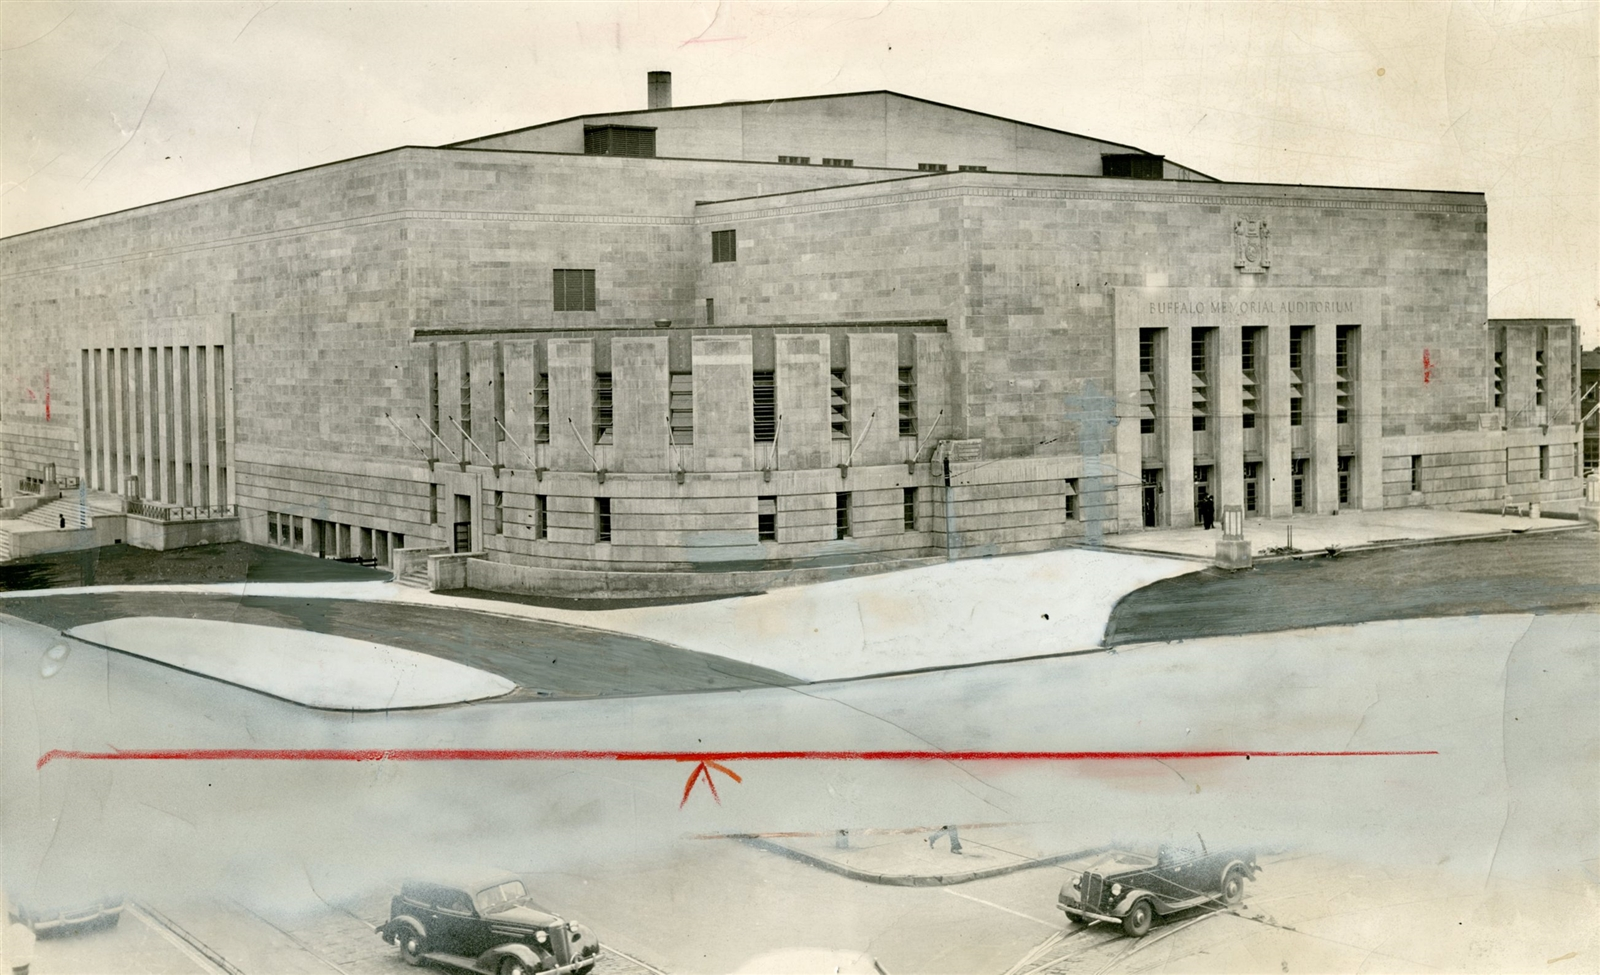 Remembering the Aud